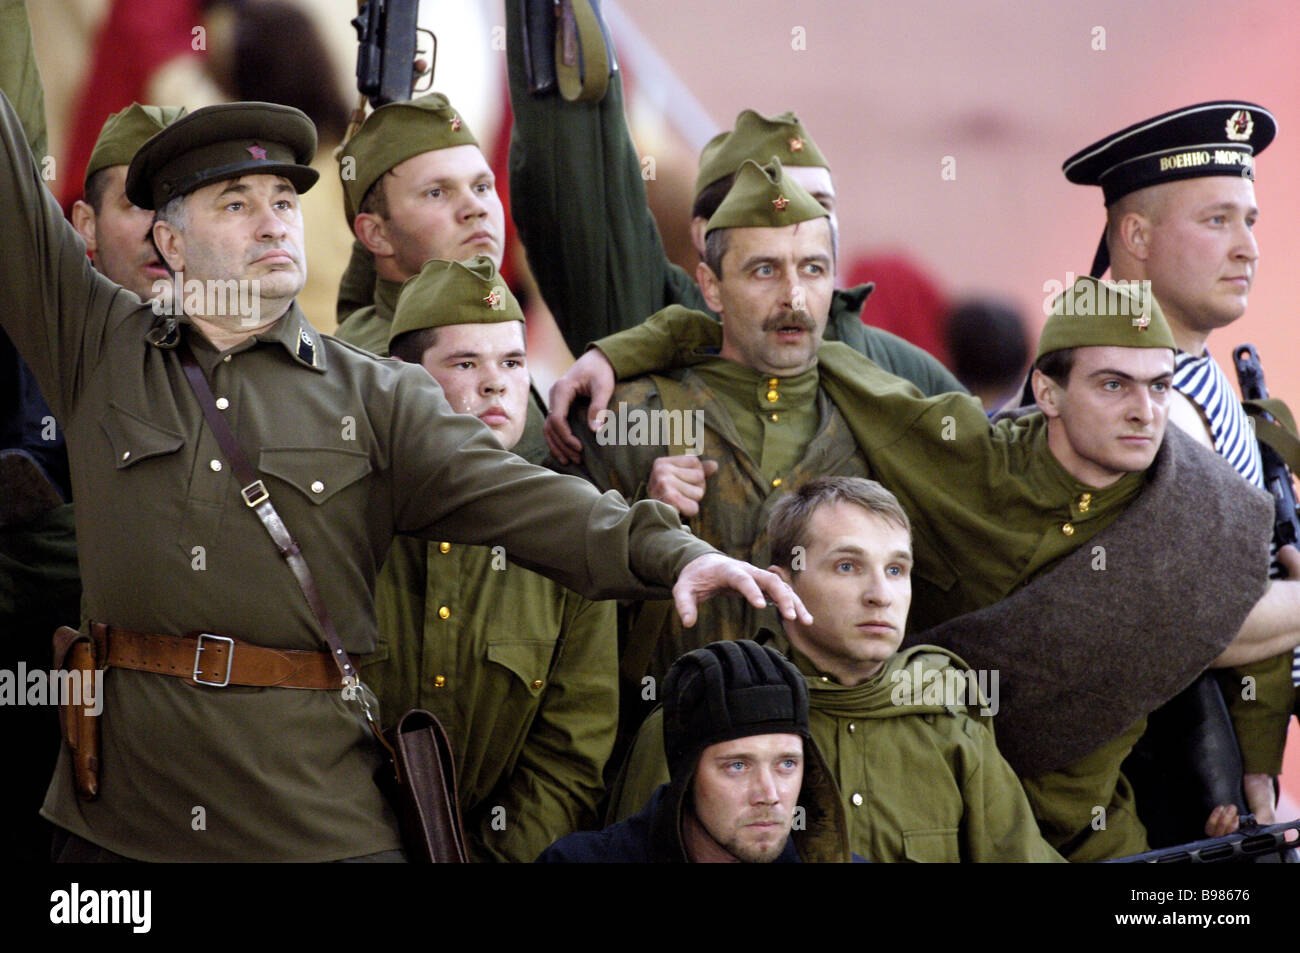 Actors at the pageant Bow to the Glorious Years Red Square Moscow May 9 2005 - Stock Image